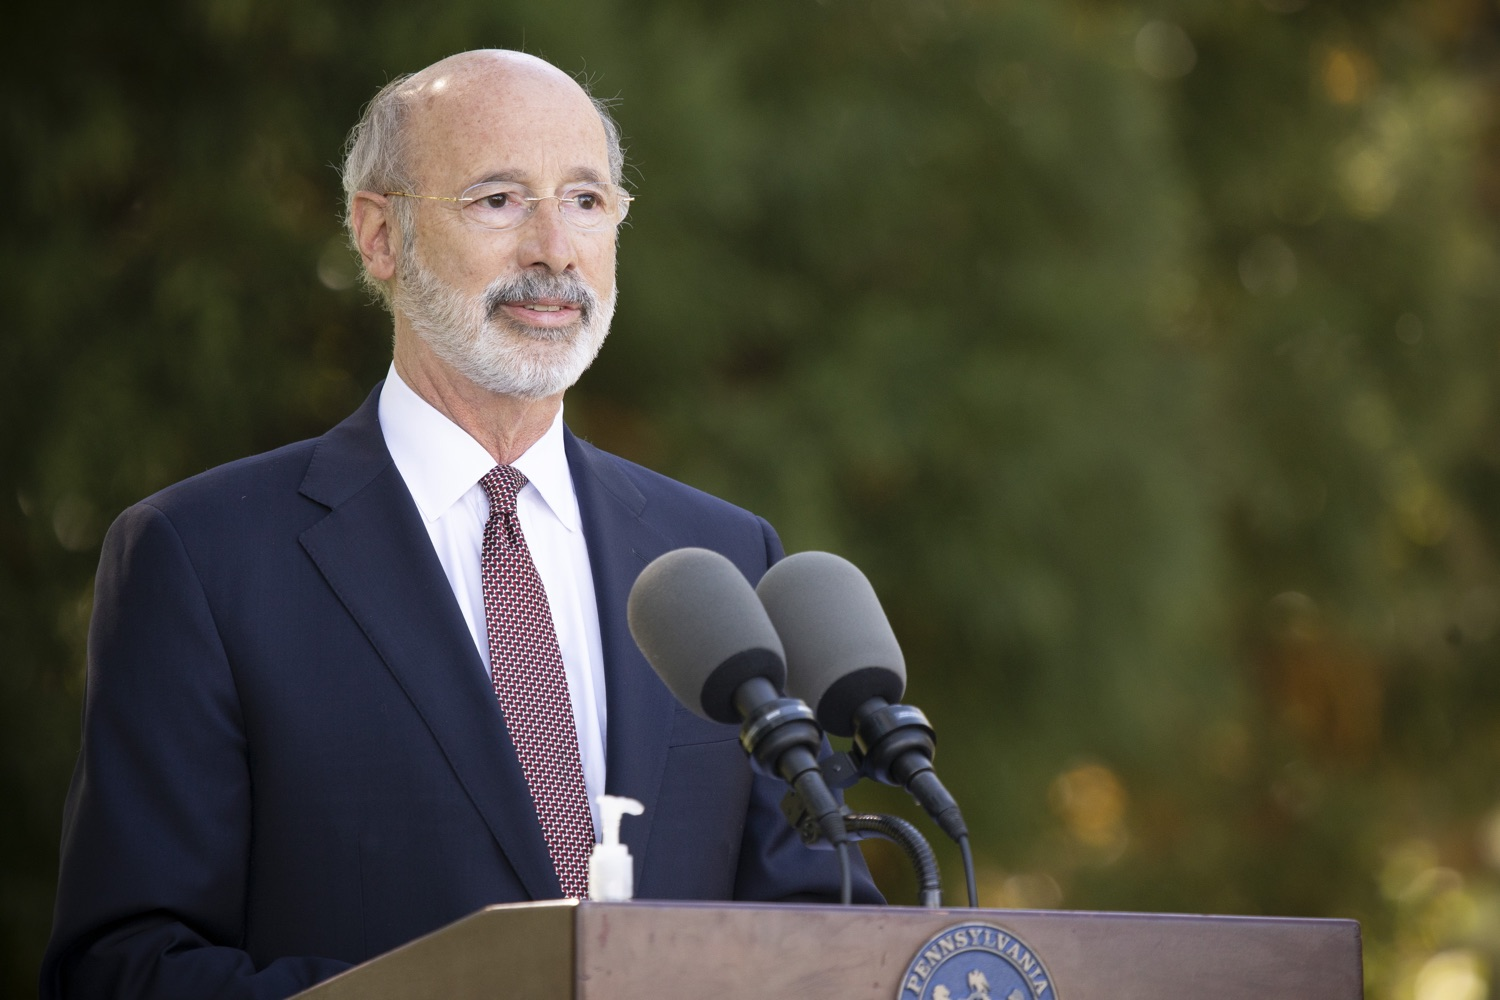 "<a href=""https://filesource.wostreaming.net/commonwealthofpa/photo/18321_gov_aca_dz_015.jpg"" target=""_blank"">⇣ Download Photo<br></a>Pennsylvania Governor Tom Wolf speaking to the press.  As the number of positive COVID-19 cases rise in Pennsylvania and as we enter flu season, protecting the Affordable Care Act (ACA) and ensuring that all Pennsylvanians have access to health coverage are more important than ever, Governor Tom Wolf said today in Chester County. The governor was joined by local elected officials and representatives from local health care organizations. Landenberg, PA  October 15, 2020"